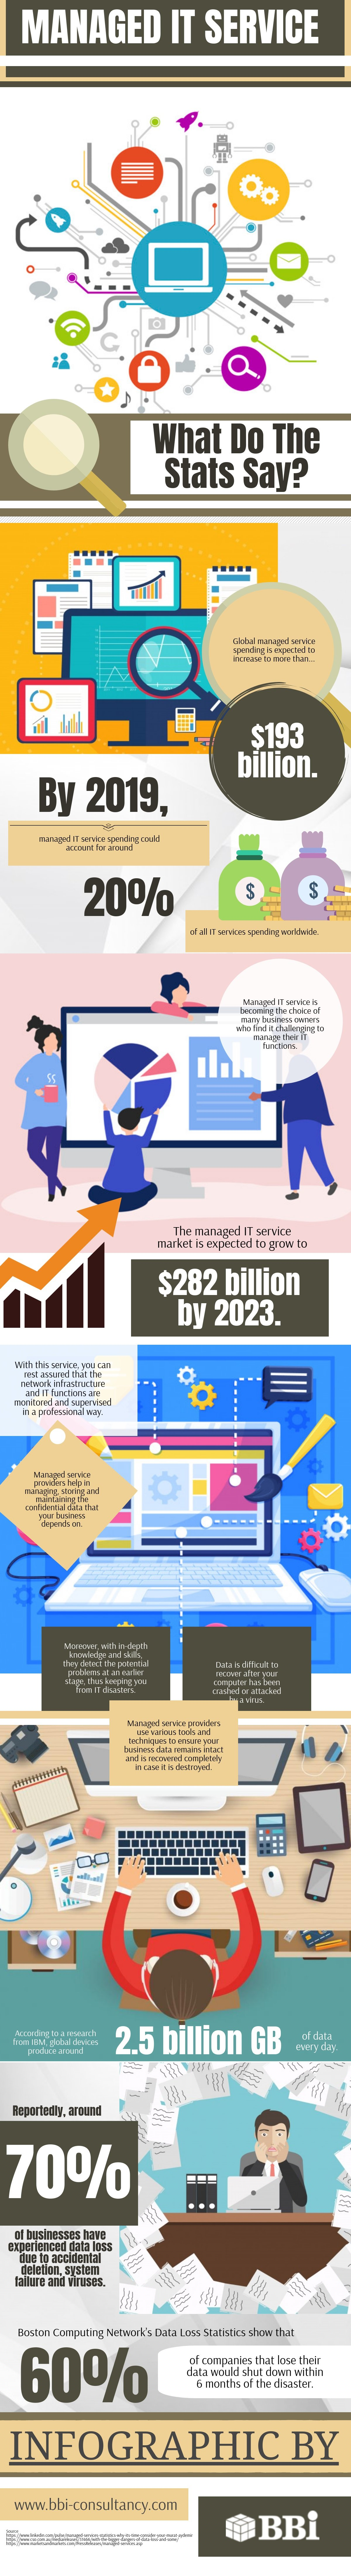 Managed IT Service Infographic